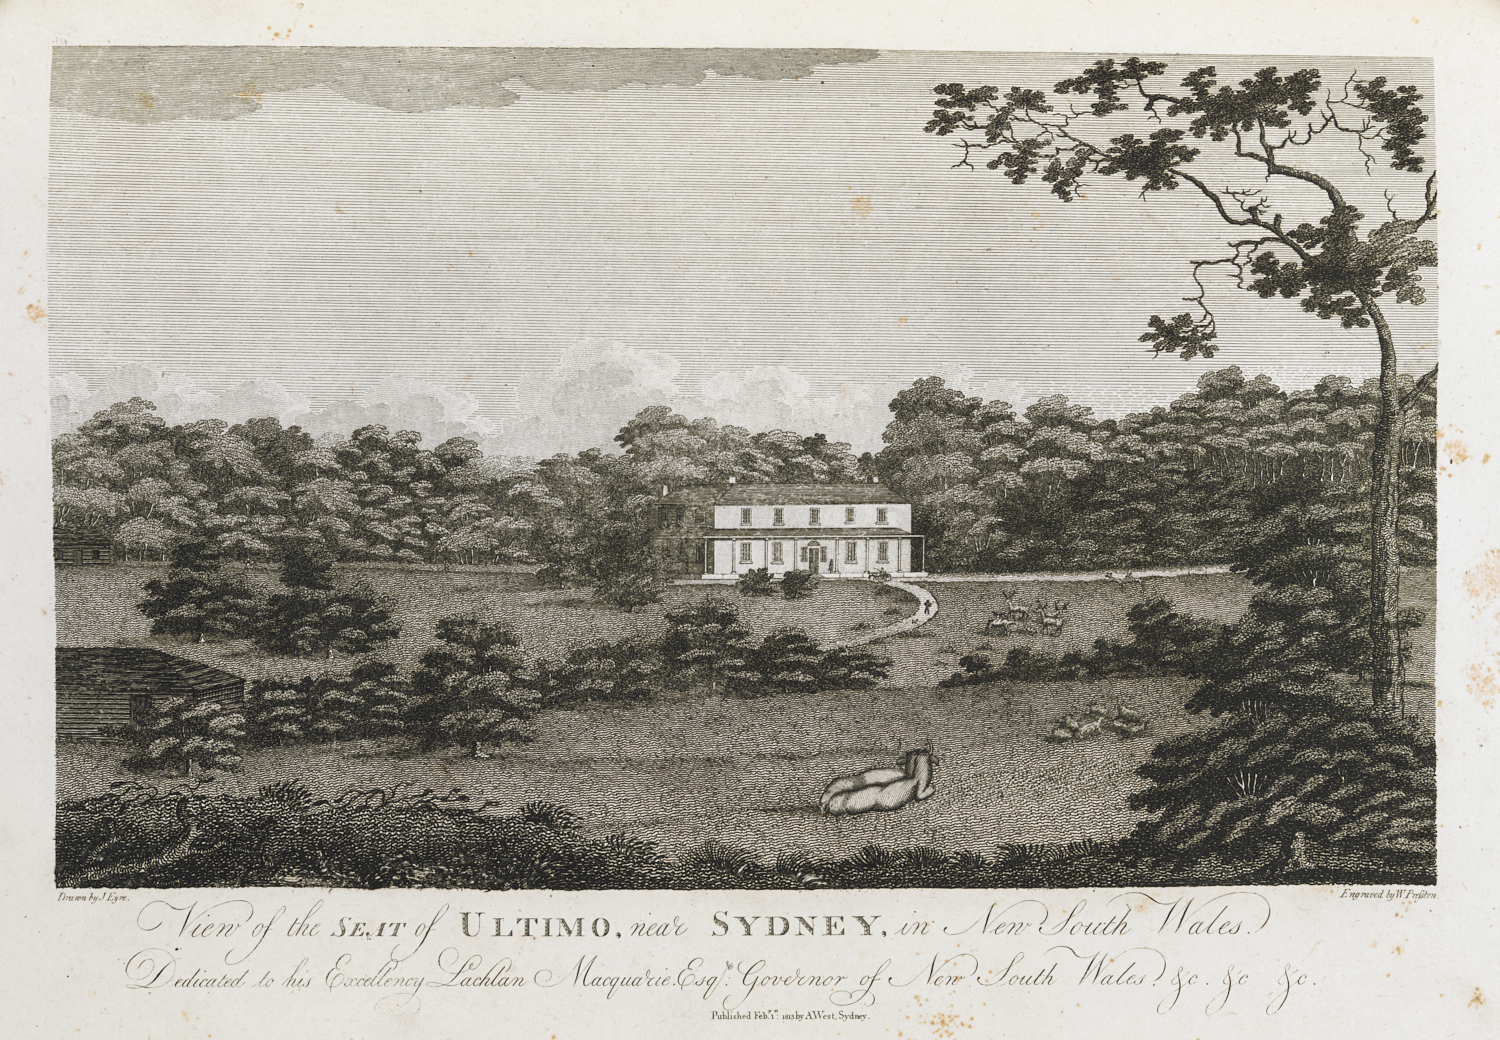 View of the SEAT of ULTIMO, near SYDNEY, in New South Wales